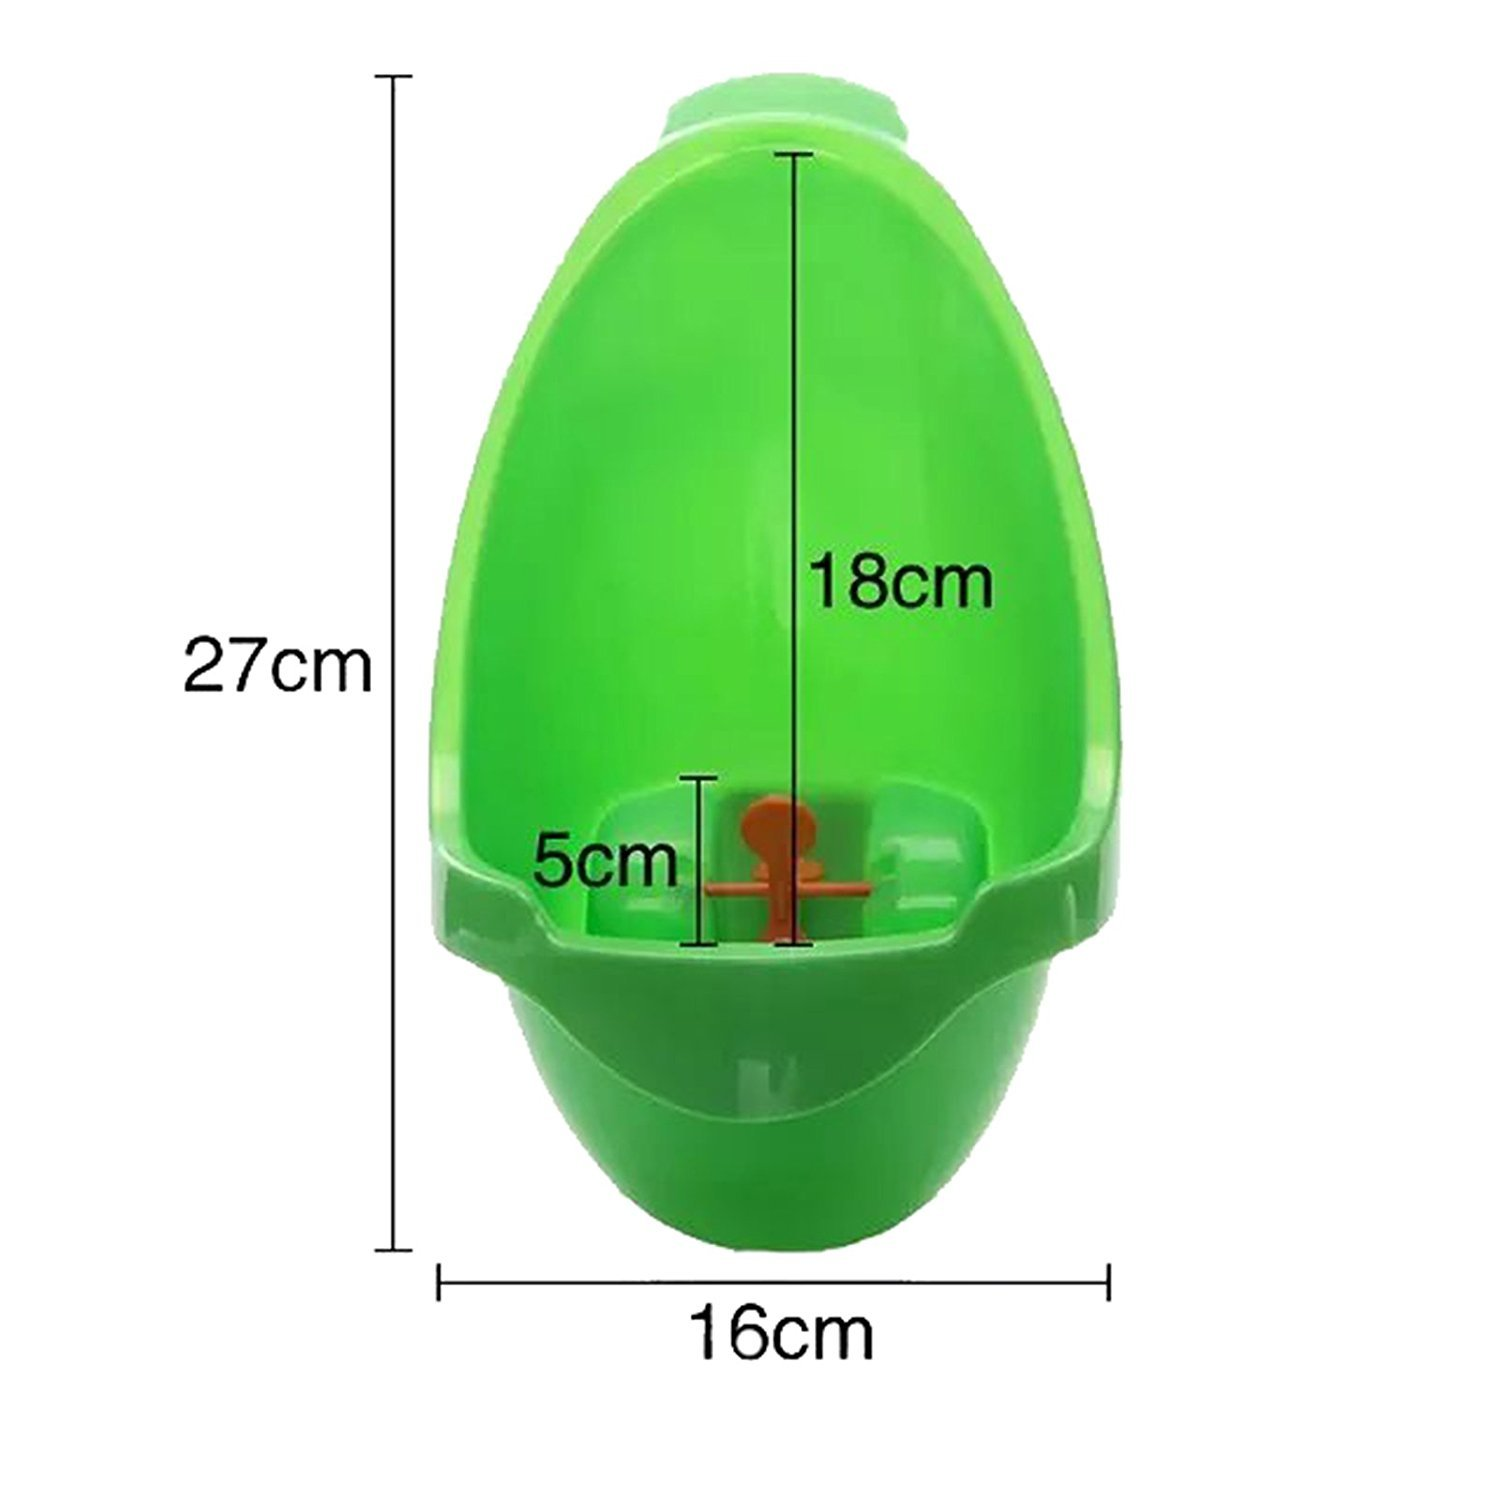 YOUTO Frog Children Potty Toilet Training Urinal for Boys Pee Trainer Bathroom - Green by YOUTO